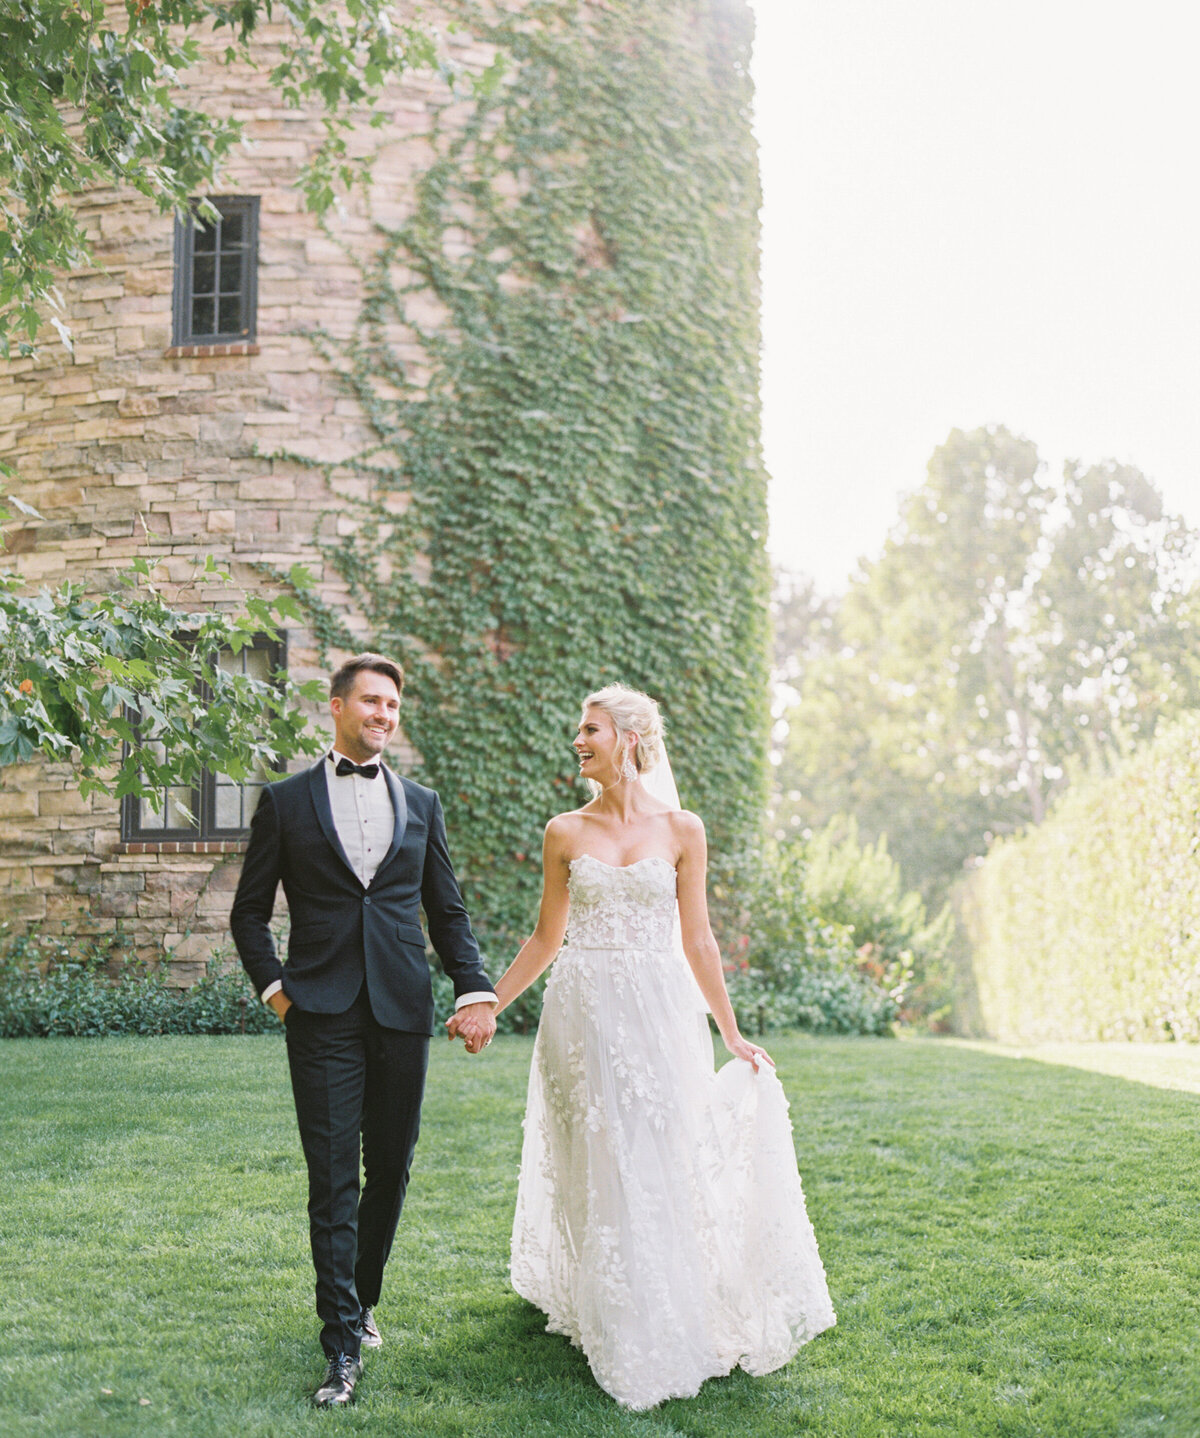 Aziz Studios California Destination Wedding Photographer Videographer Photography Videography Fine Art Artistic Film Luxury High End Curated Imagery Emotive Nostalgic Timeless Travel Husband Wife Team Andrew Melissa Aziz Natural Light Photo Video32